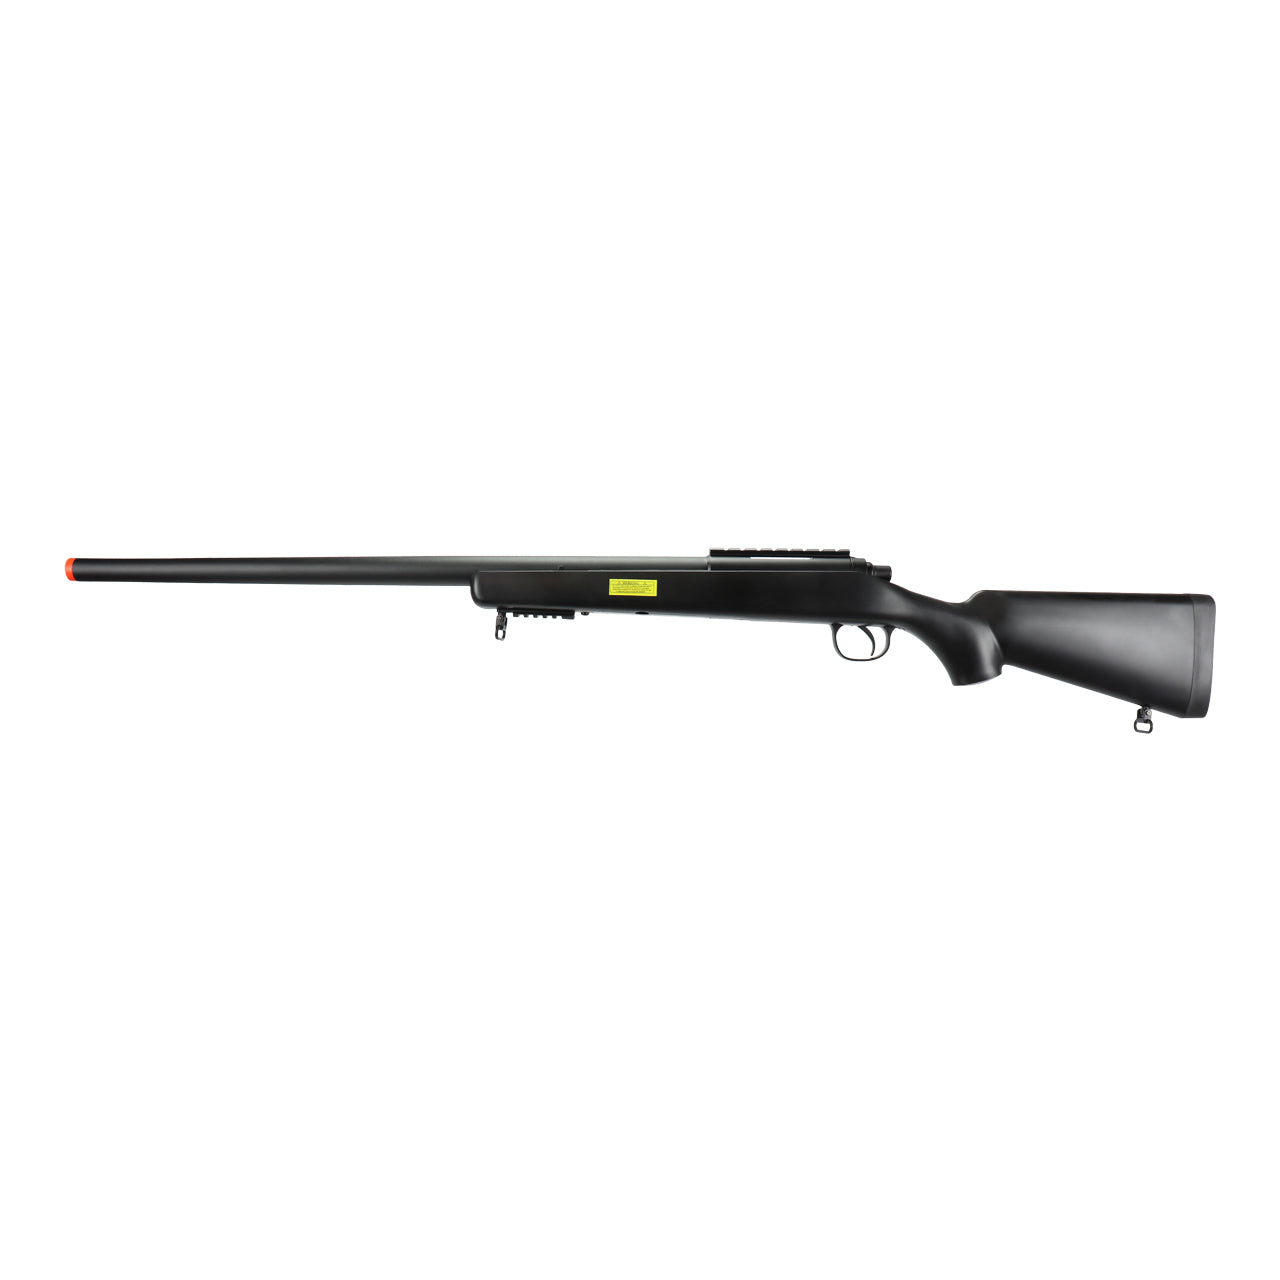 WELL VSR-10 MB03 Bolt Action Airsoft Sniper Rifle